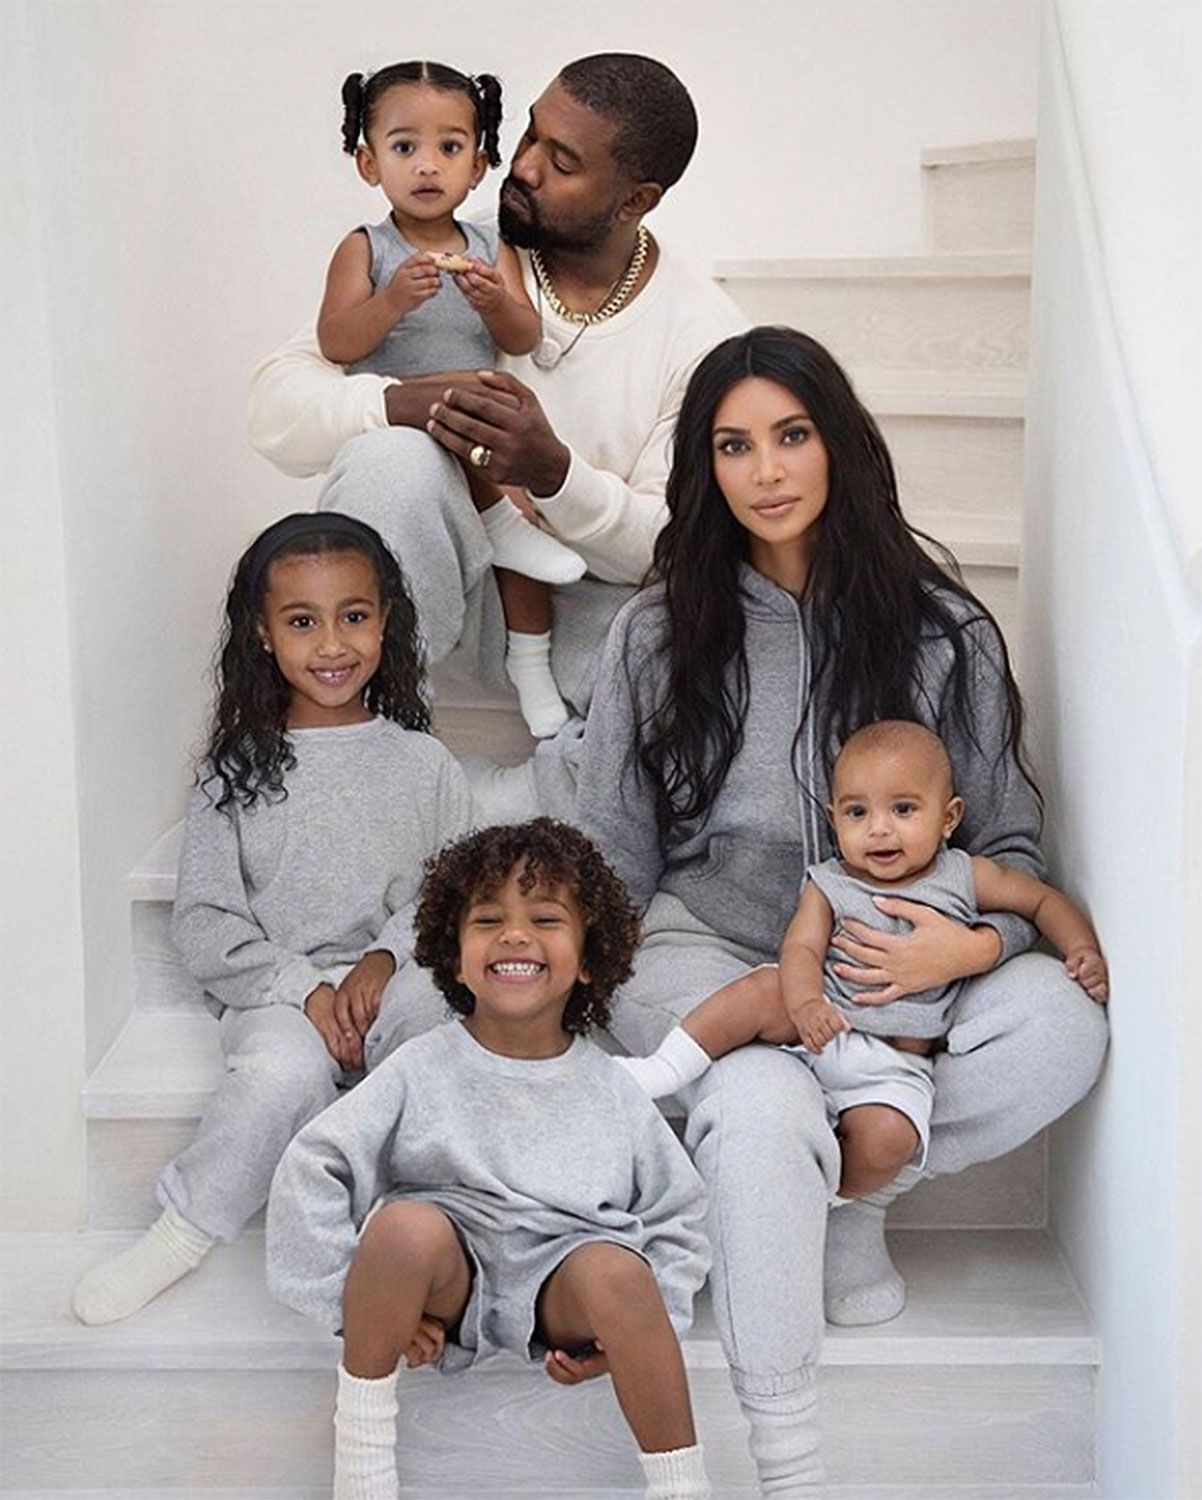 Kim Kardashian and Kanye West Share the West Family Christmas Card 2019 with All Four Kids  Kim Kardashian and Kanye West Share the West Family Christmas Card 2019 with A...